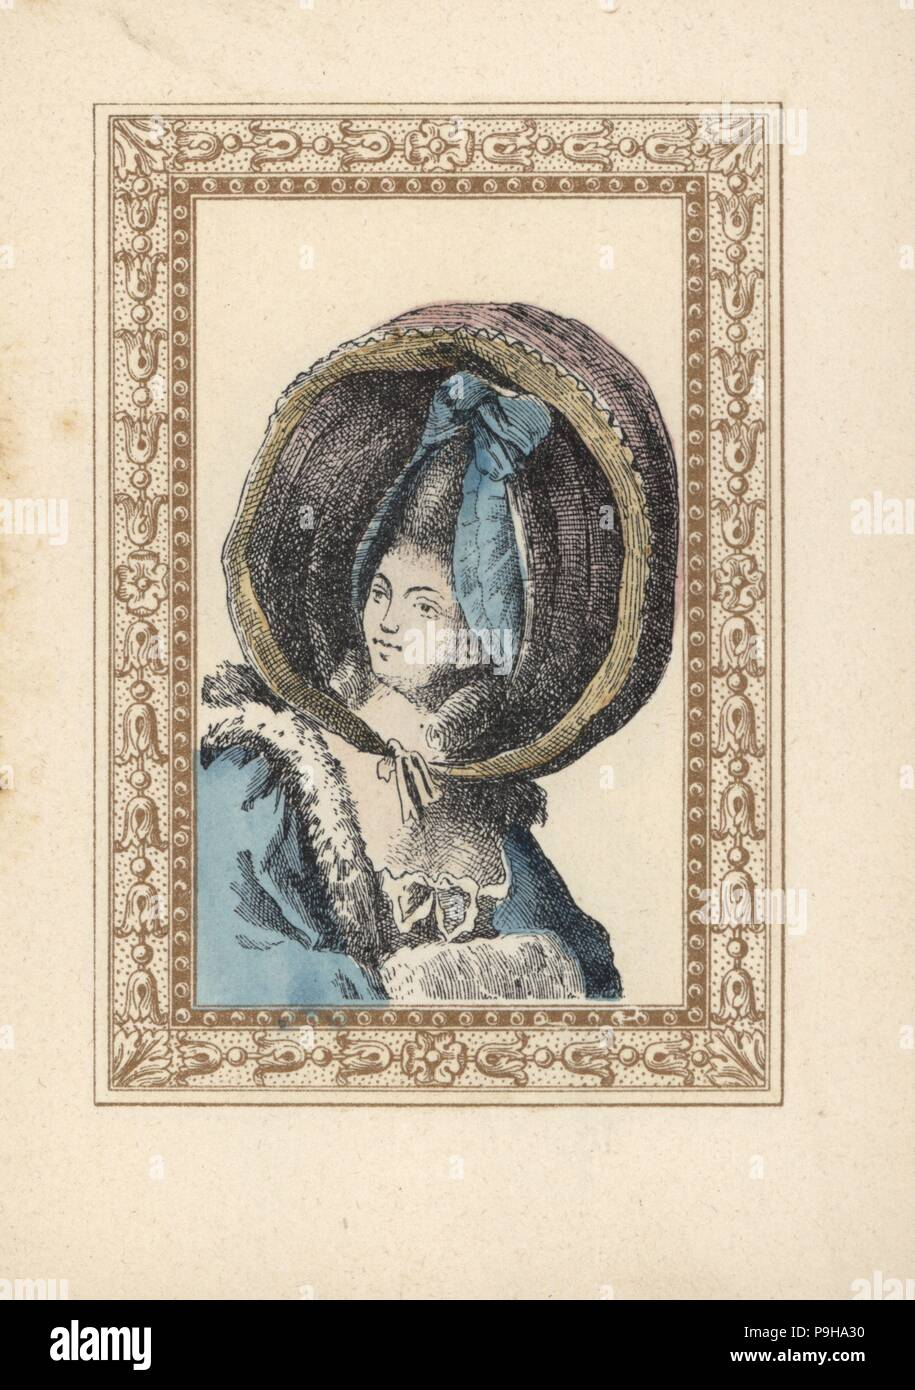 Woman in a round bonnet with ribbon rosette and two ringlets. The bonnet is called a turned-up calash, Caleche retroussee, after the carriage with a folding top. Handcoloured lithograph by de Laubadere from Octave Uzanne's Stylish Hairstyle or Eccentric Finery from the era of King Louis XVI, Coiffures de Style, la Parure Excentrique, Rouveyre, Paris, 1895. - Stock Image